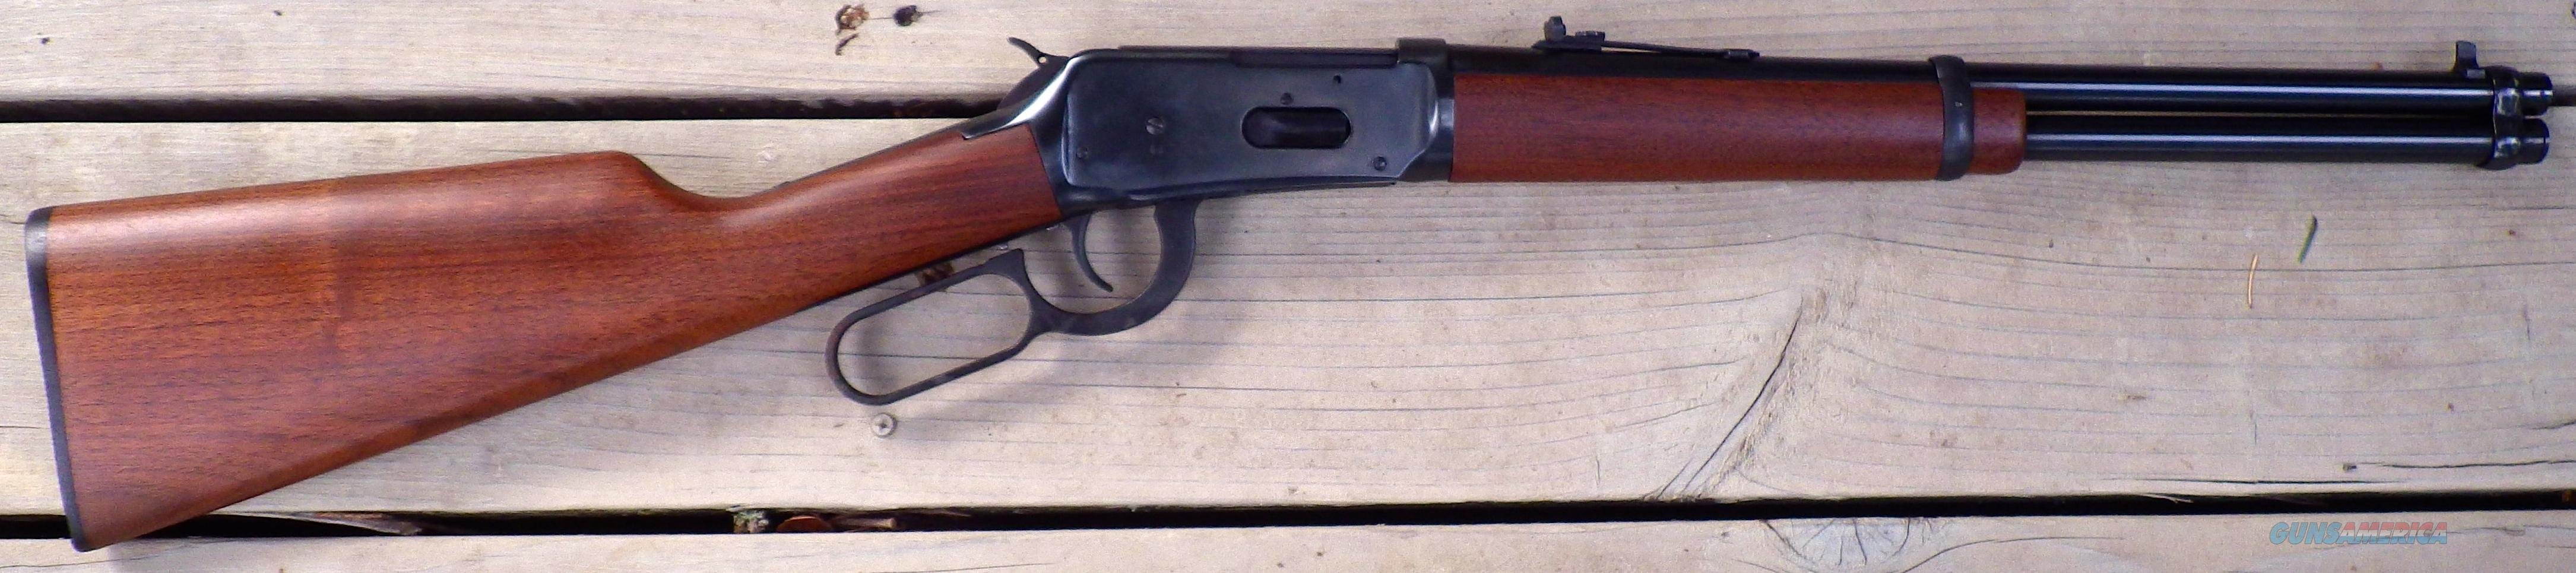 Winchester Model 94 AE .44 Magnum, 16-inch, saddle ring  Guns > Rifles > Winchester Rifles - Modern Lever > Model 94 > Post-64